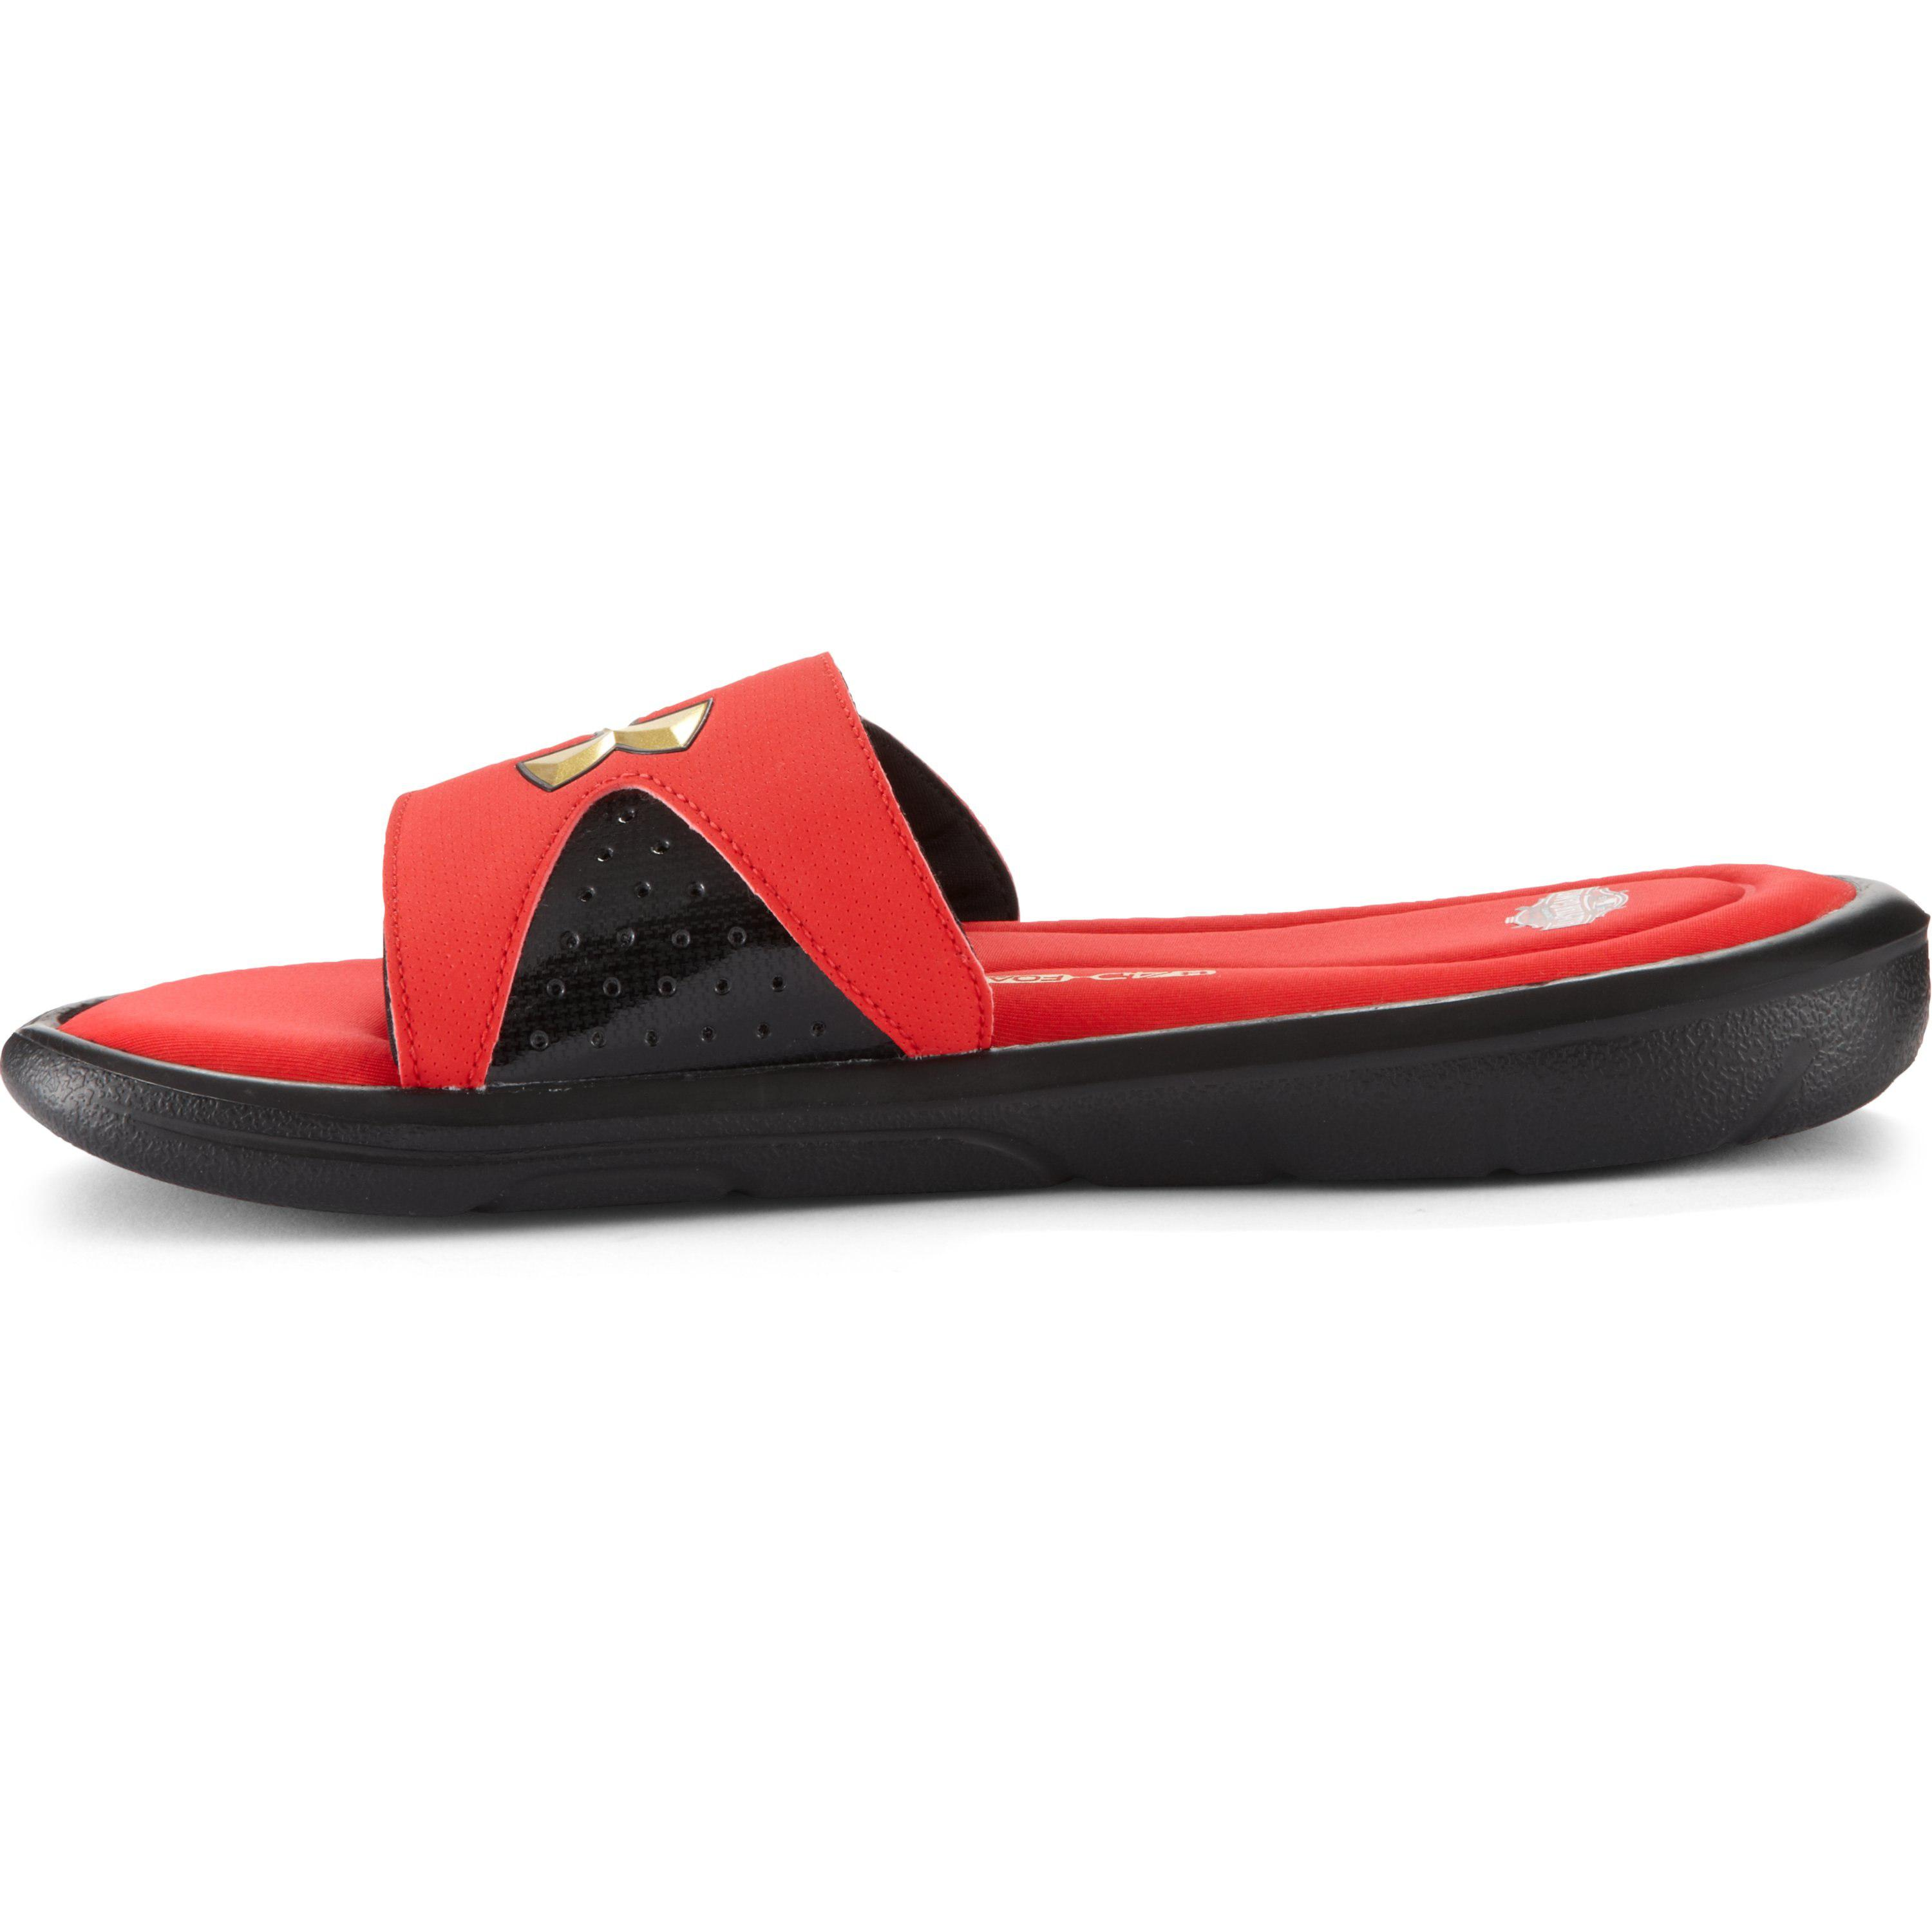 c63644cb23 Under Armour Red Men's Ua Ignite Iv Sandals – Mlb All-star Game Edition for  men